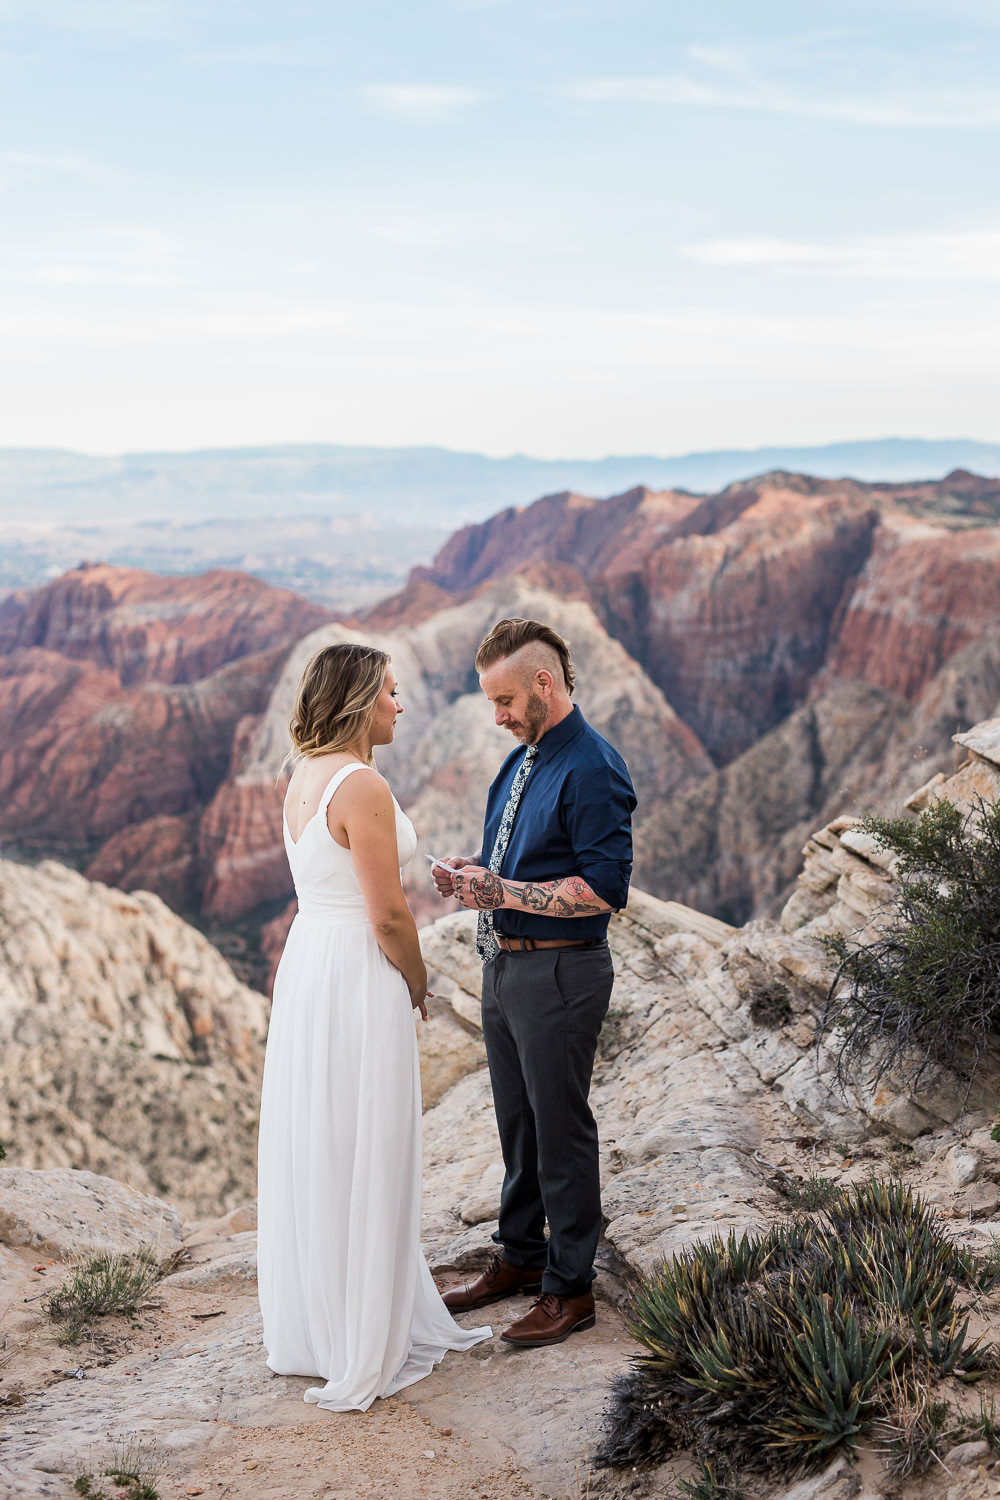 Couple exchanges vows for anniversary with epic views Southern Utah